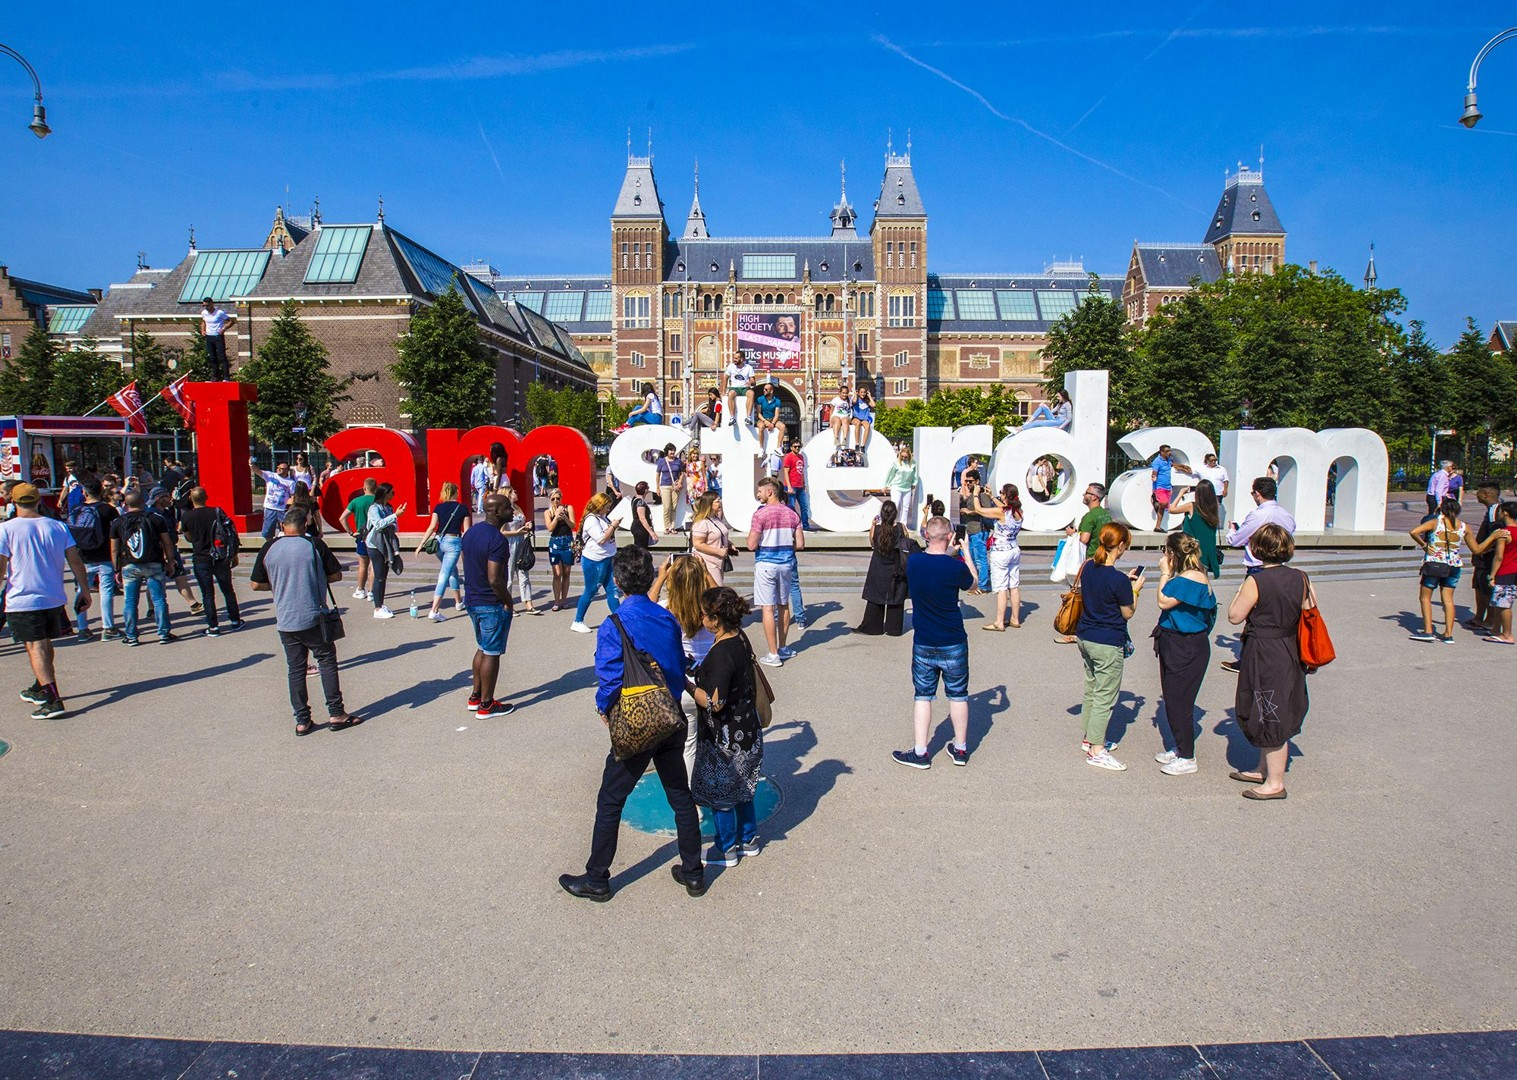 experience-amsterdam-culture-landmarks-bike-and-boat-skedaddle.jpg - Holland and Belgium - Bruges to Amsterdam - Bike and Barge Holiday - Leisure Cycling